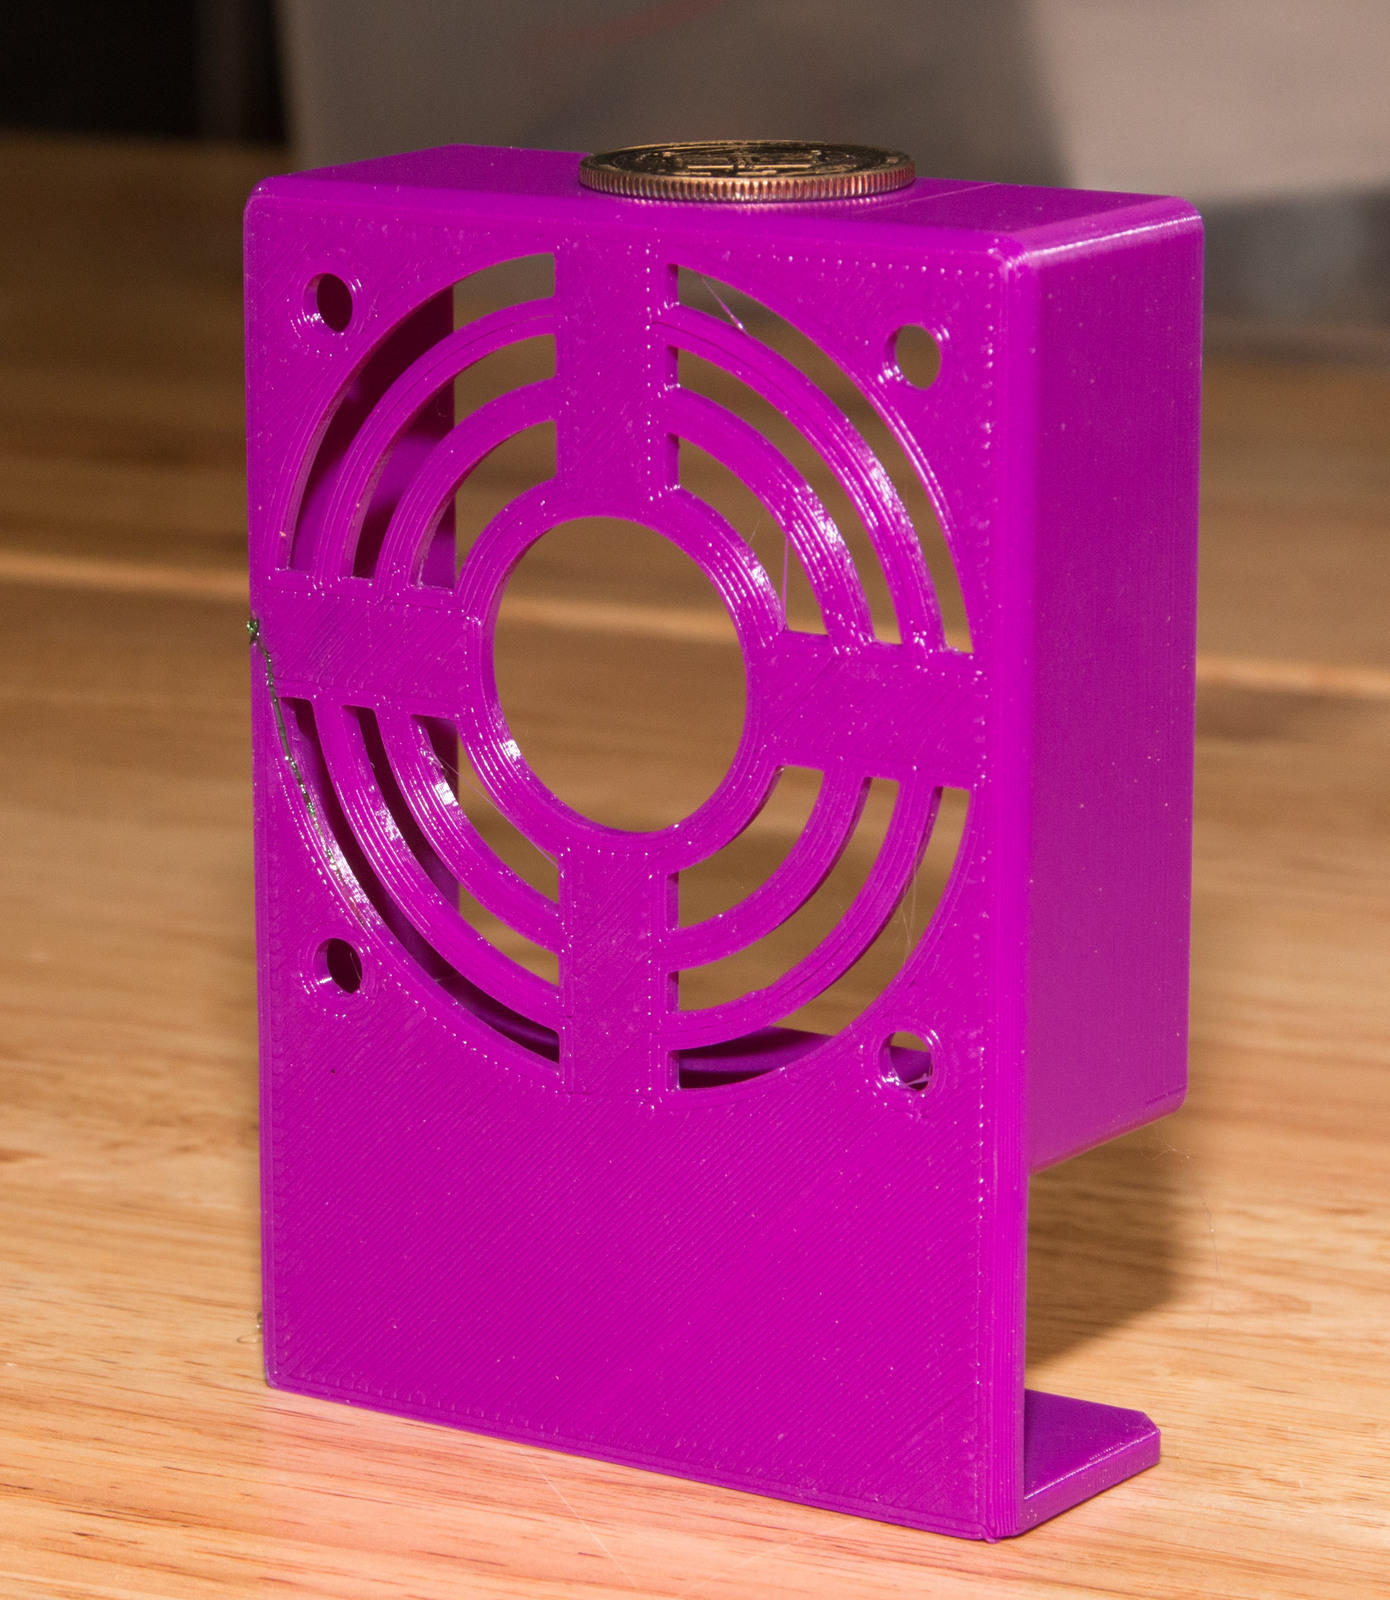 60mm Fan holder This fan holder was designed to add filament cooling for small parts on my Makeit pro.